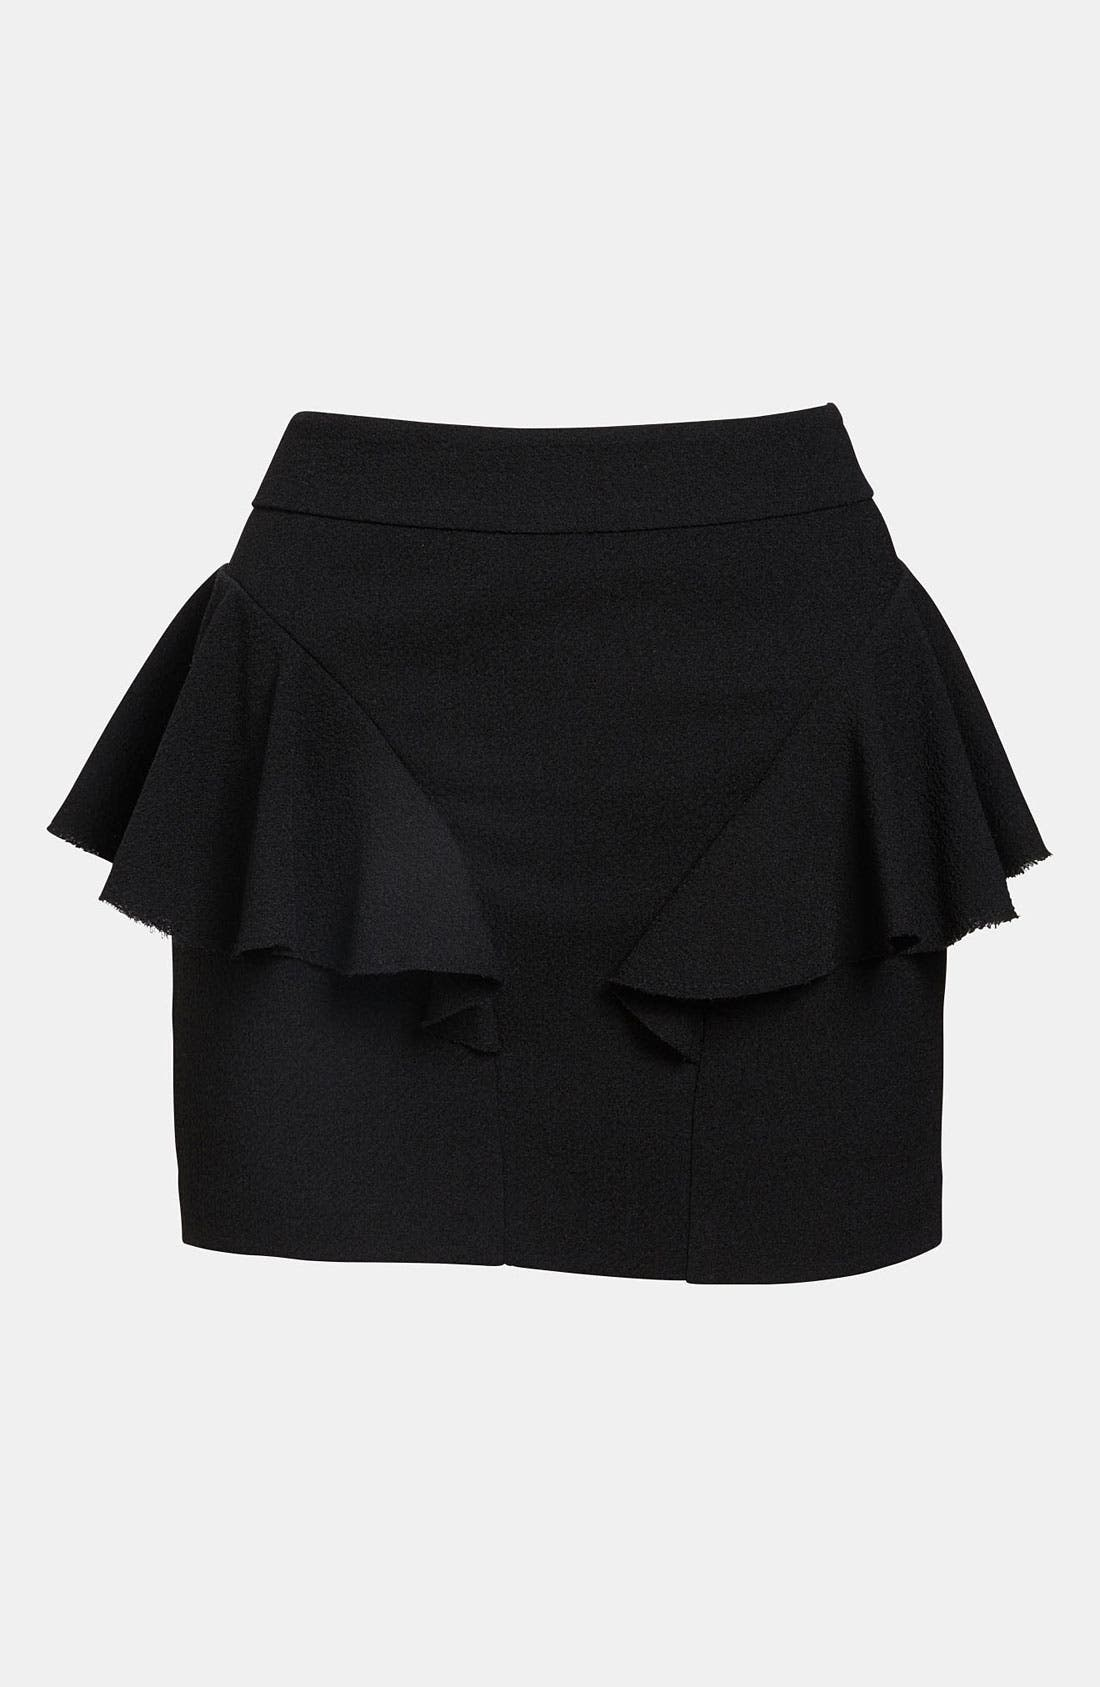 Main Image - Tildon Side Ruffle Skirt